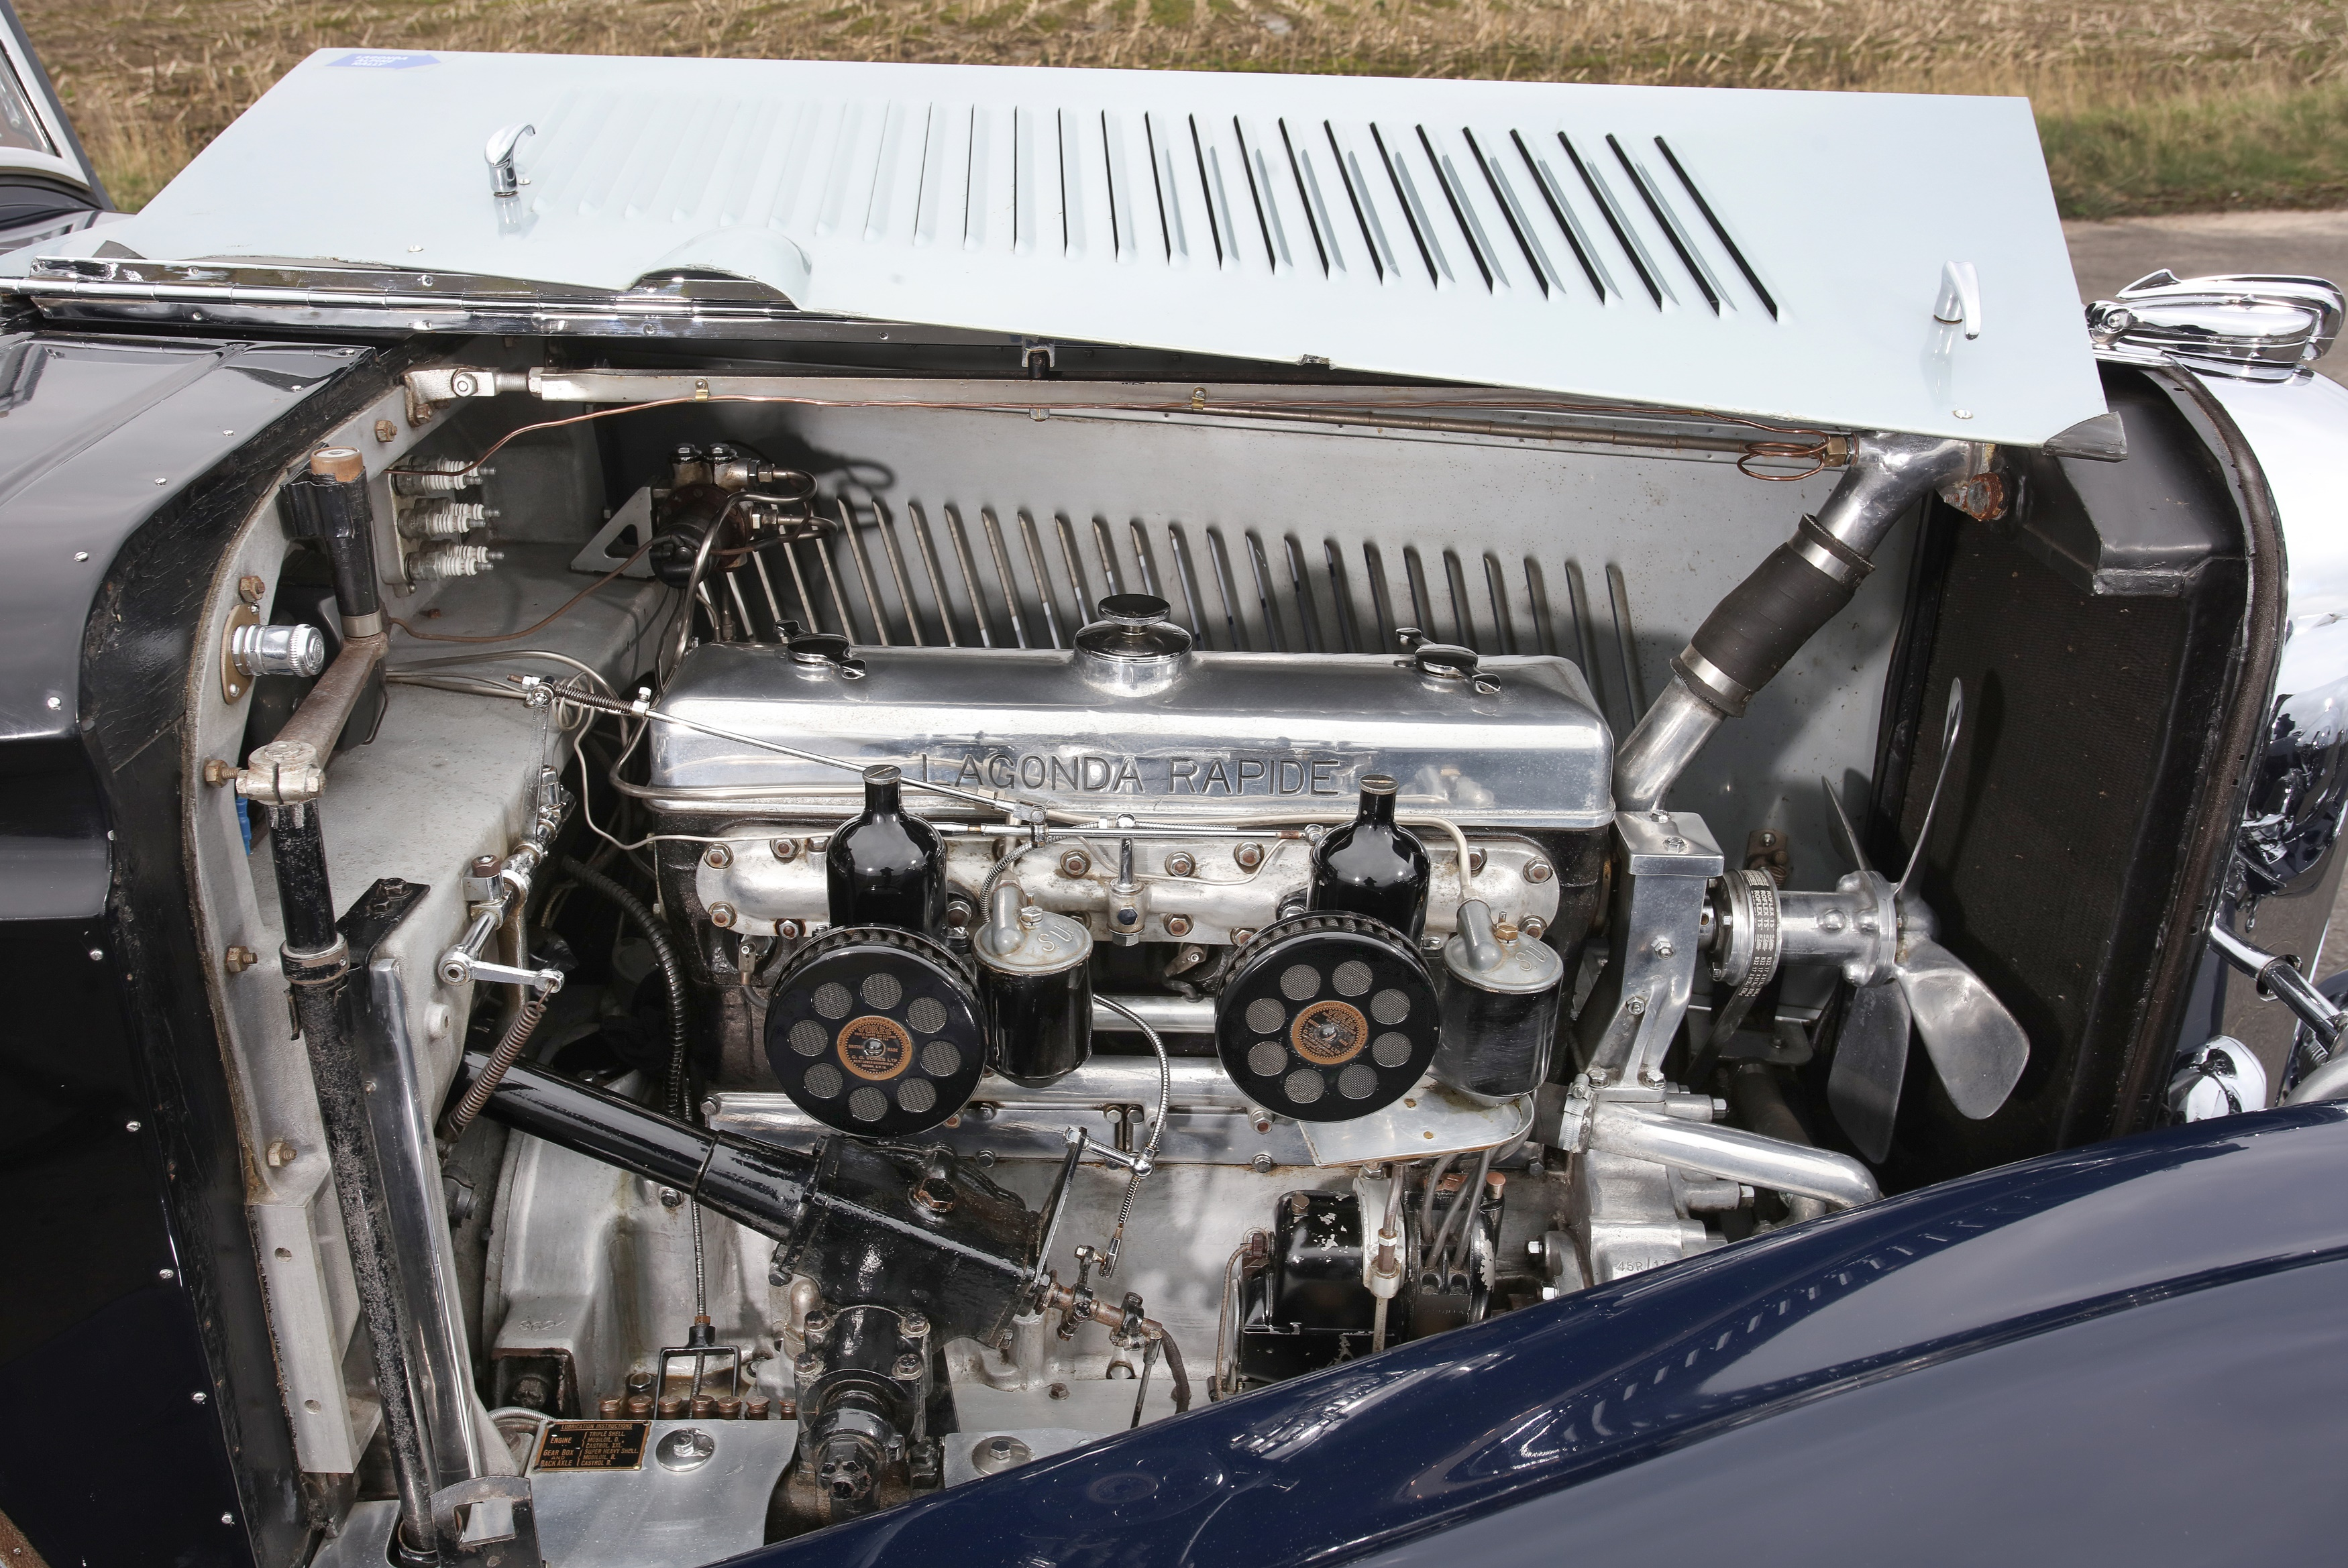 Lagonda Rapide engine